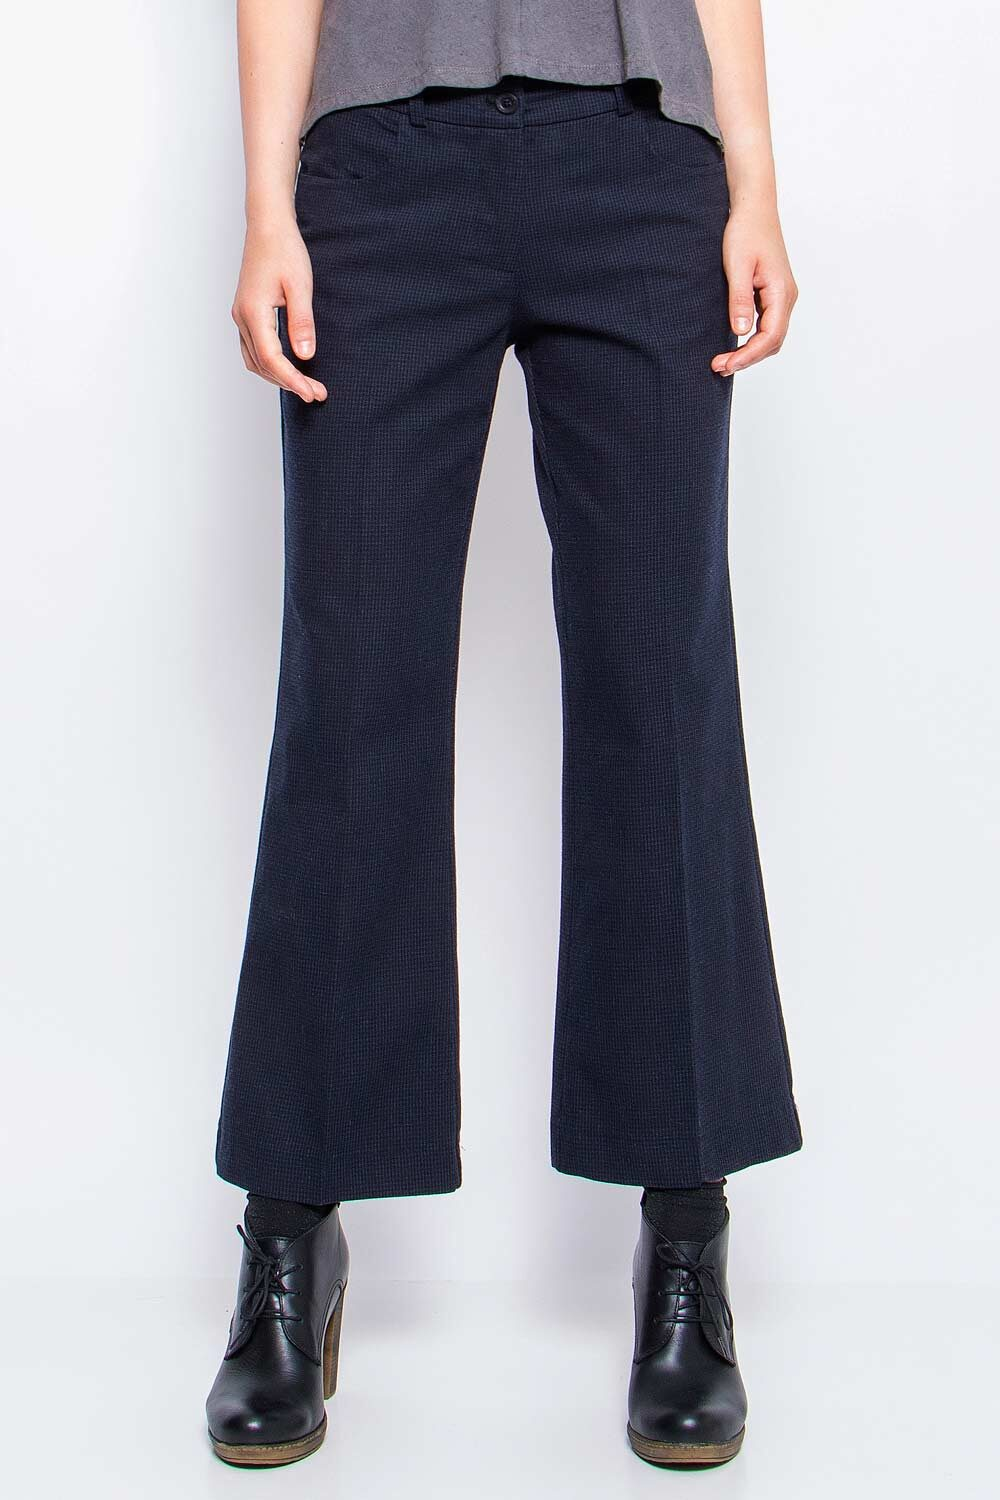 NMST male trousers